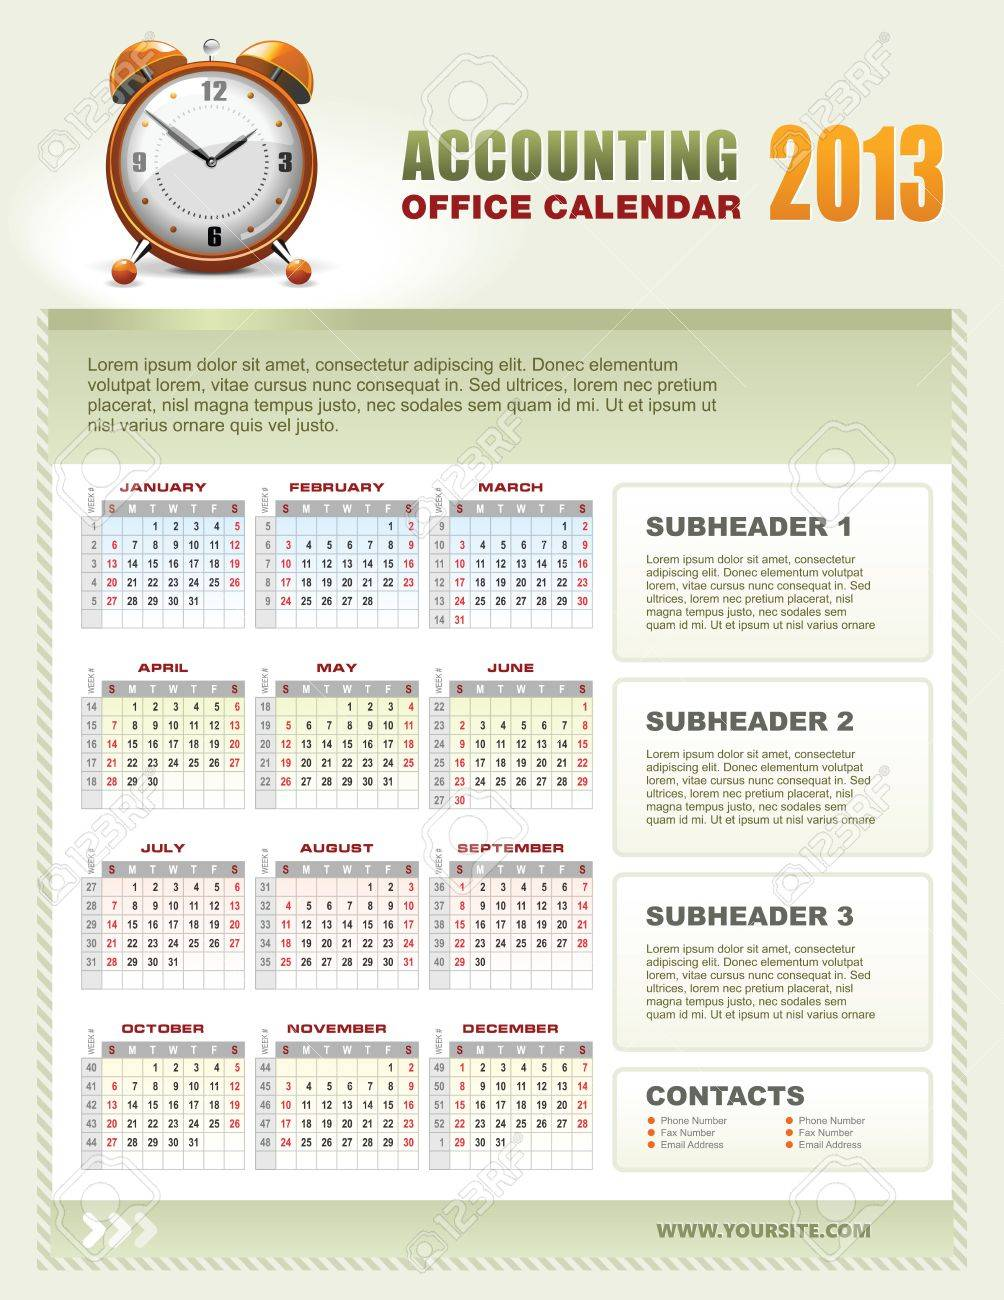 2013 Accounting Corporate Office Calendar Template Grid With